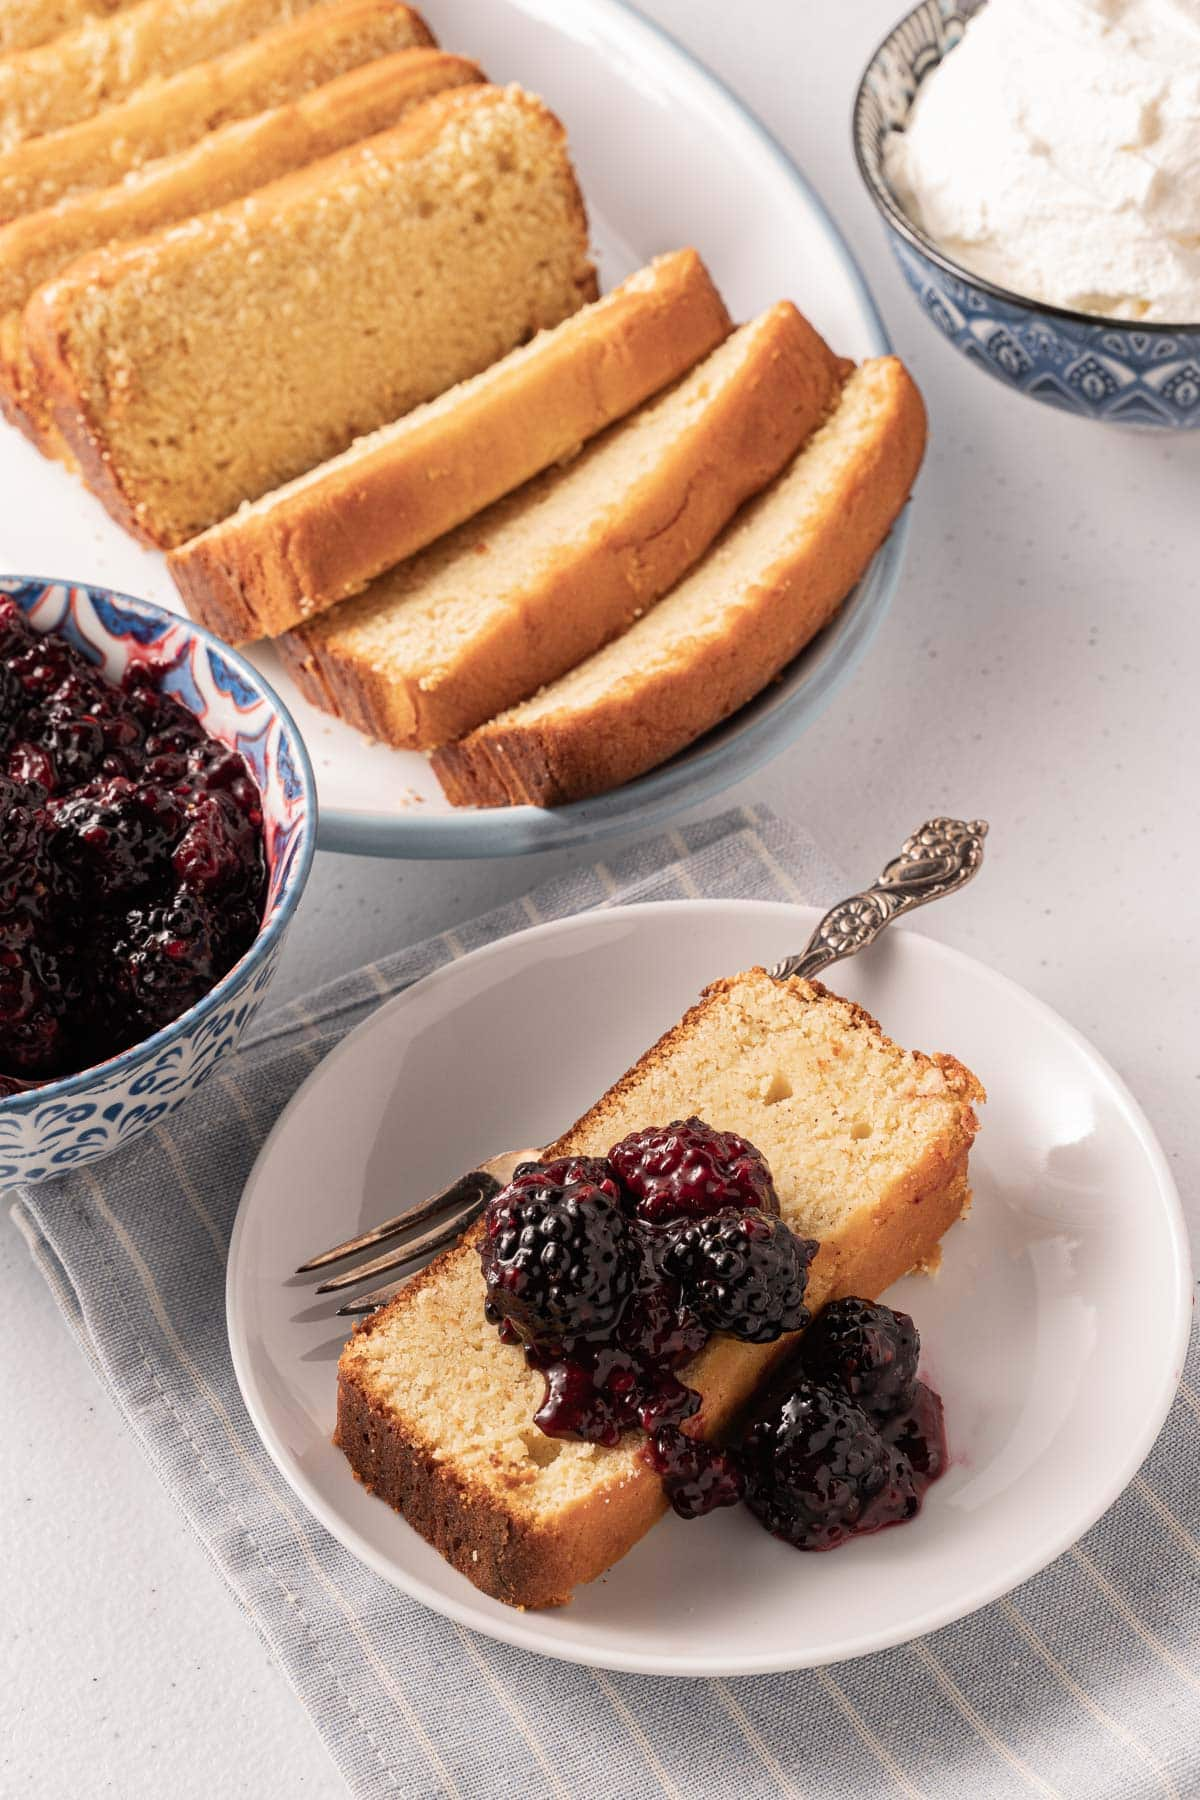 poundcake with blueberry compote on plate, whipped cream